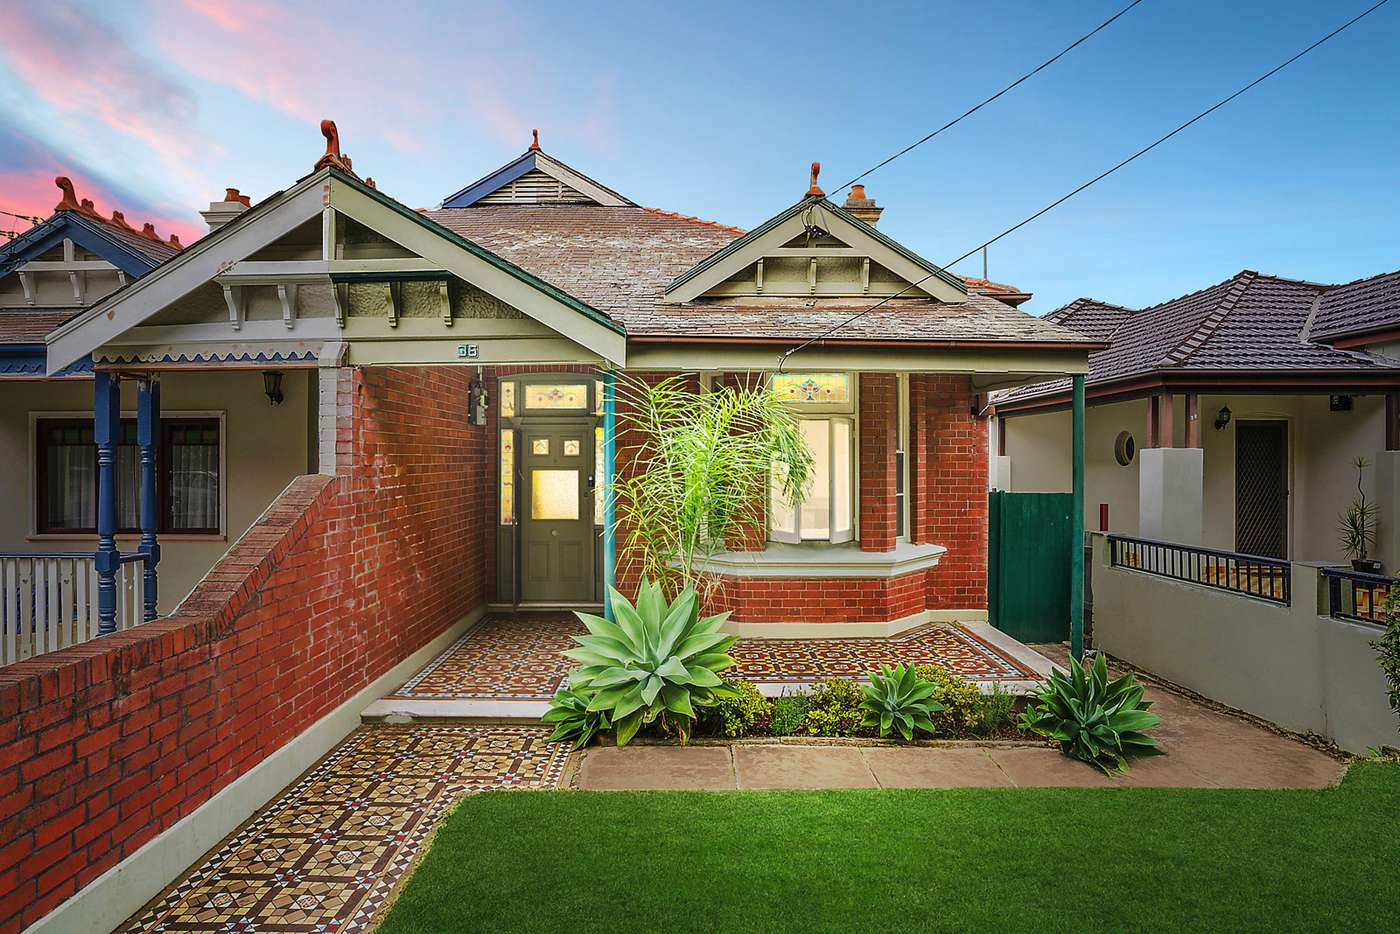 Main view of Homely house listing, 36 Villiers Street, Rockdale NSW 2216